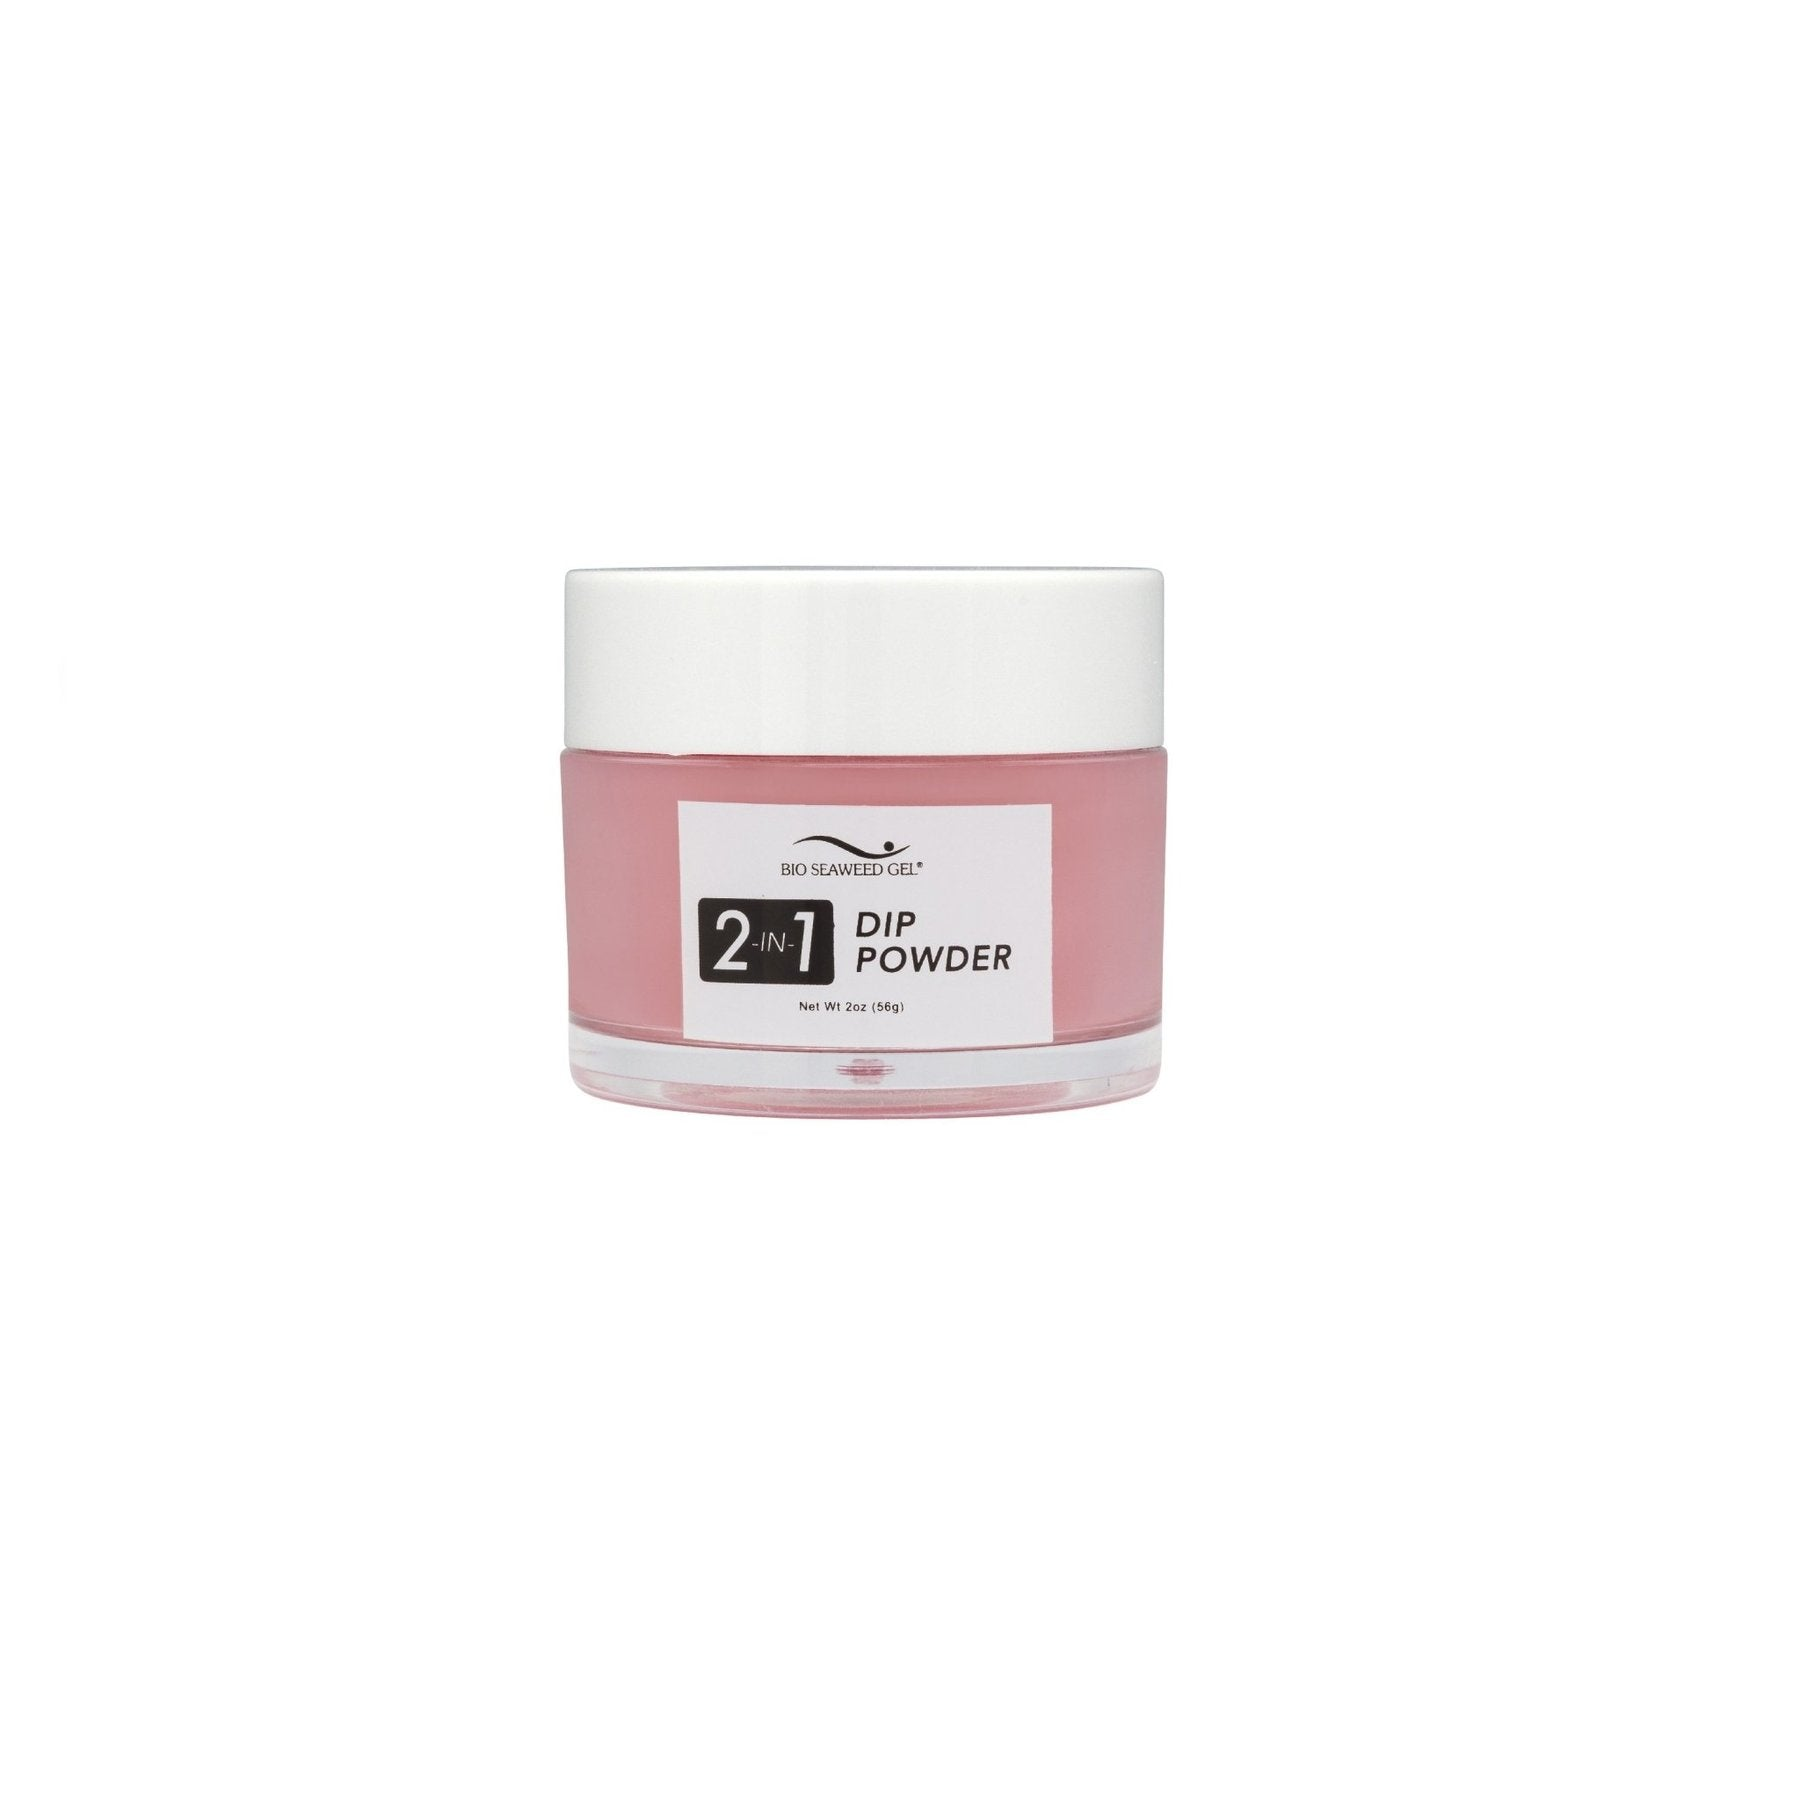 25 SPICY | Bio Seaweed Gel® Dip Powder System - CM Nails & Beauty Supply